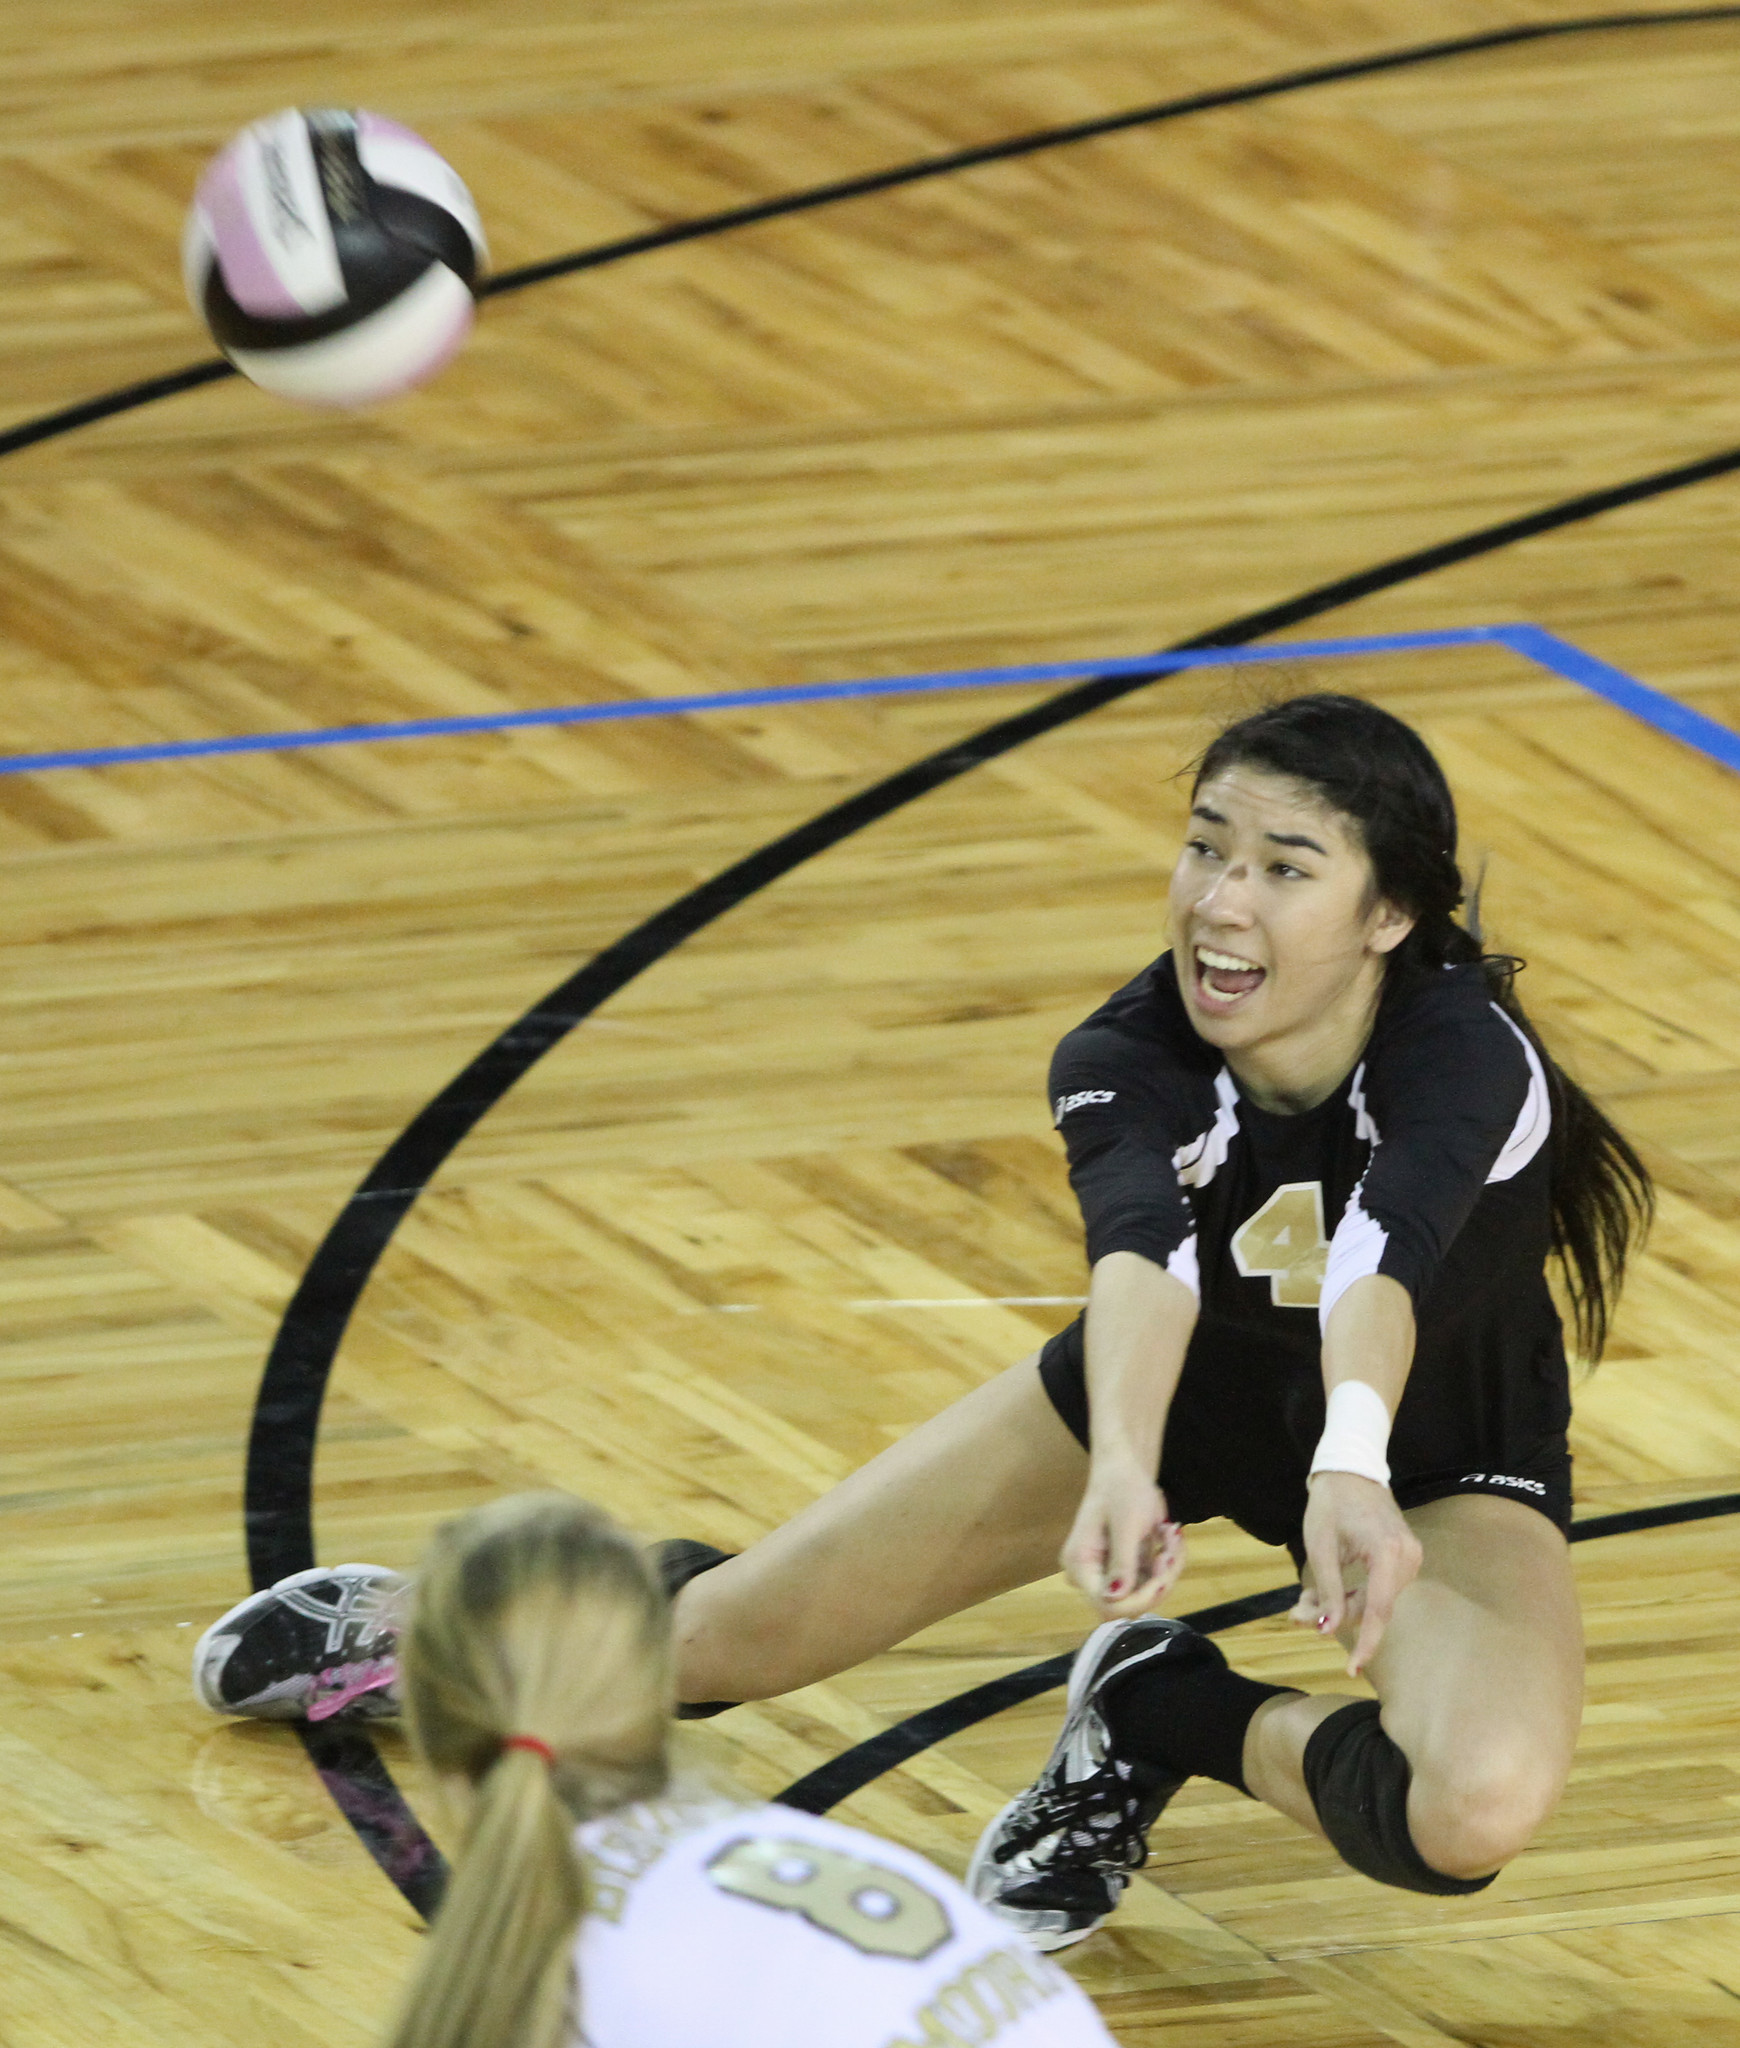 Lindsey Owens had a big night to lead Bishop Moore past Winter Park Wednesday.